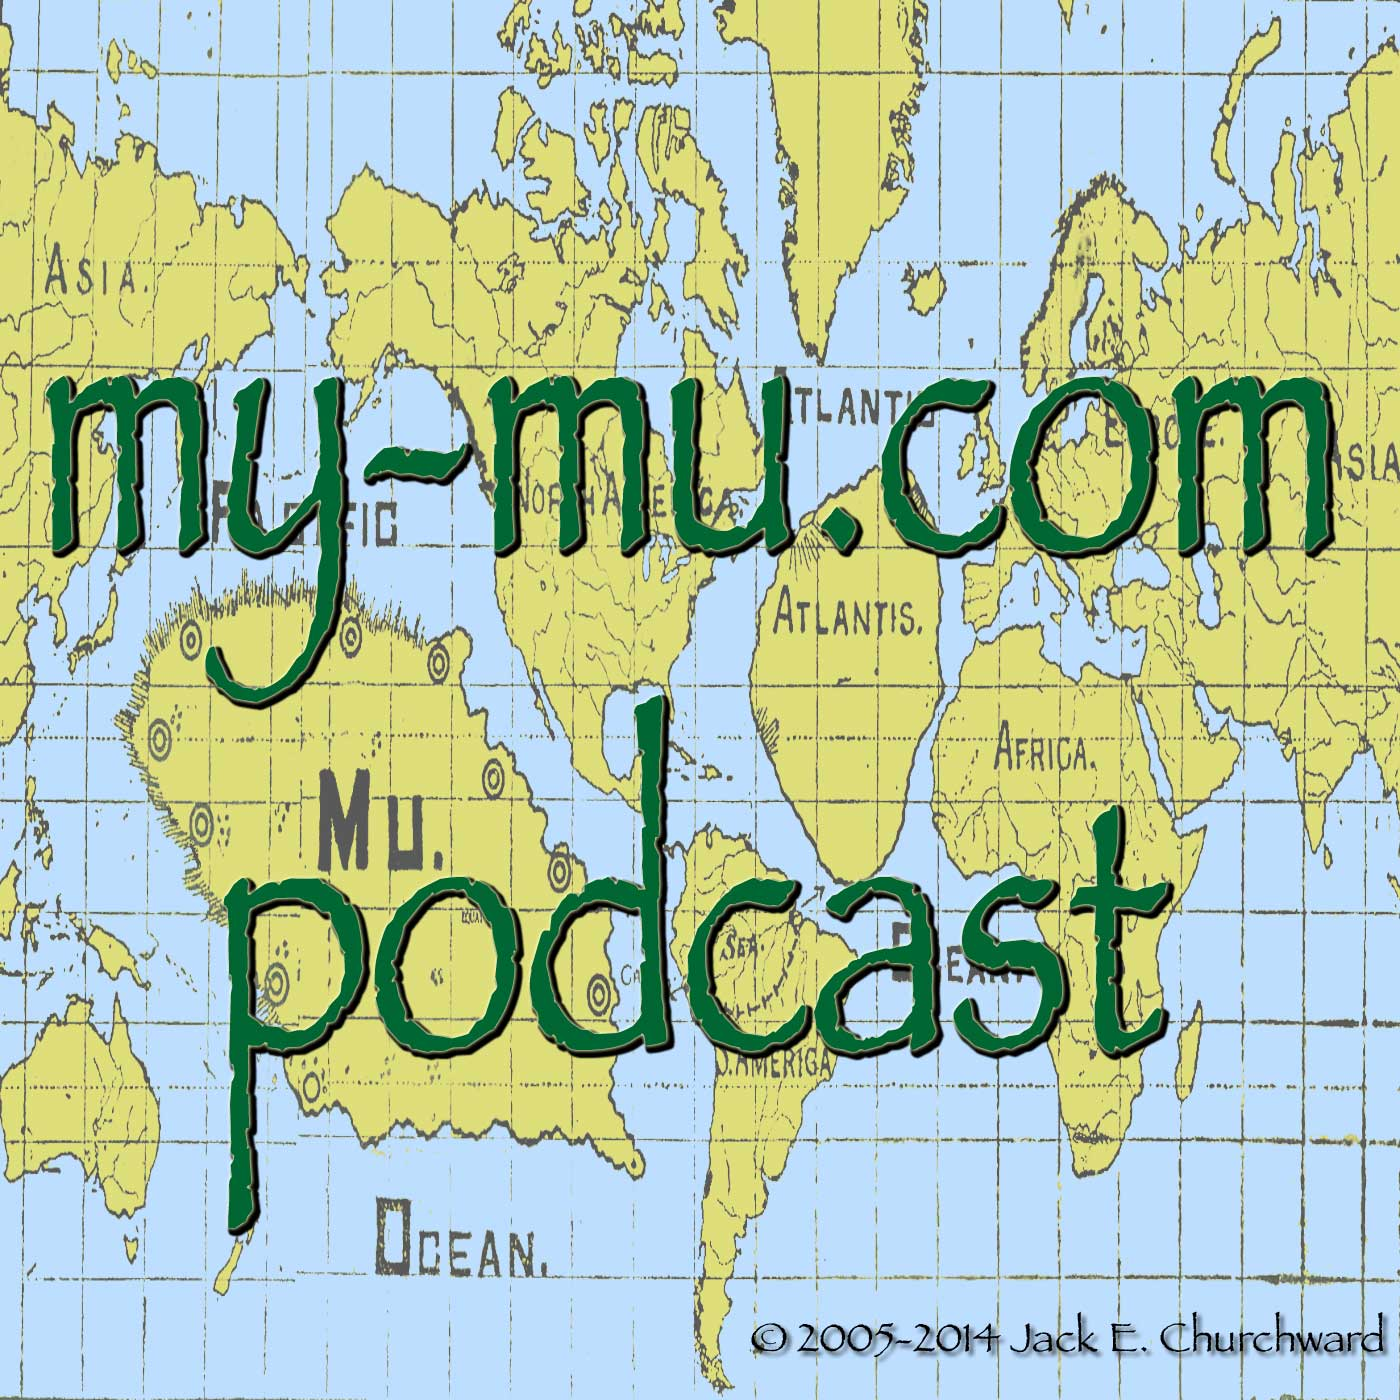 My-Mu.com Podcast